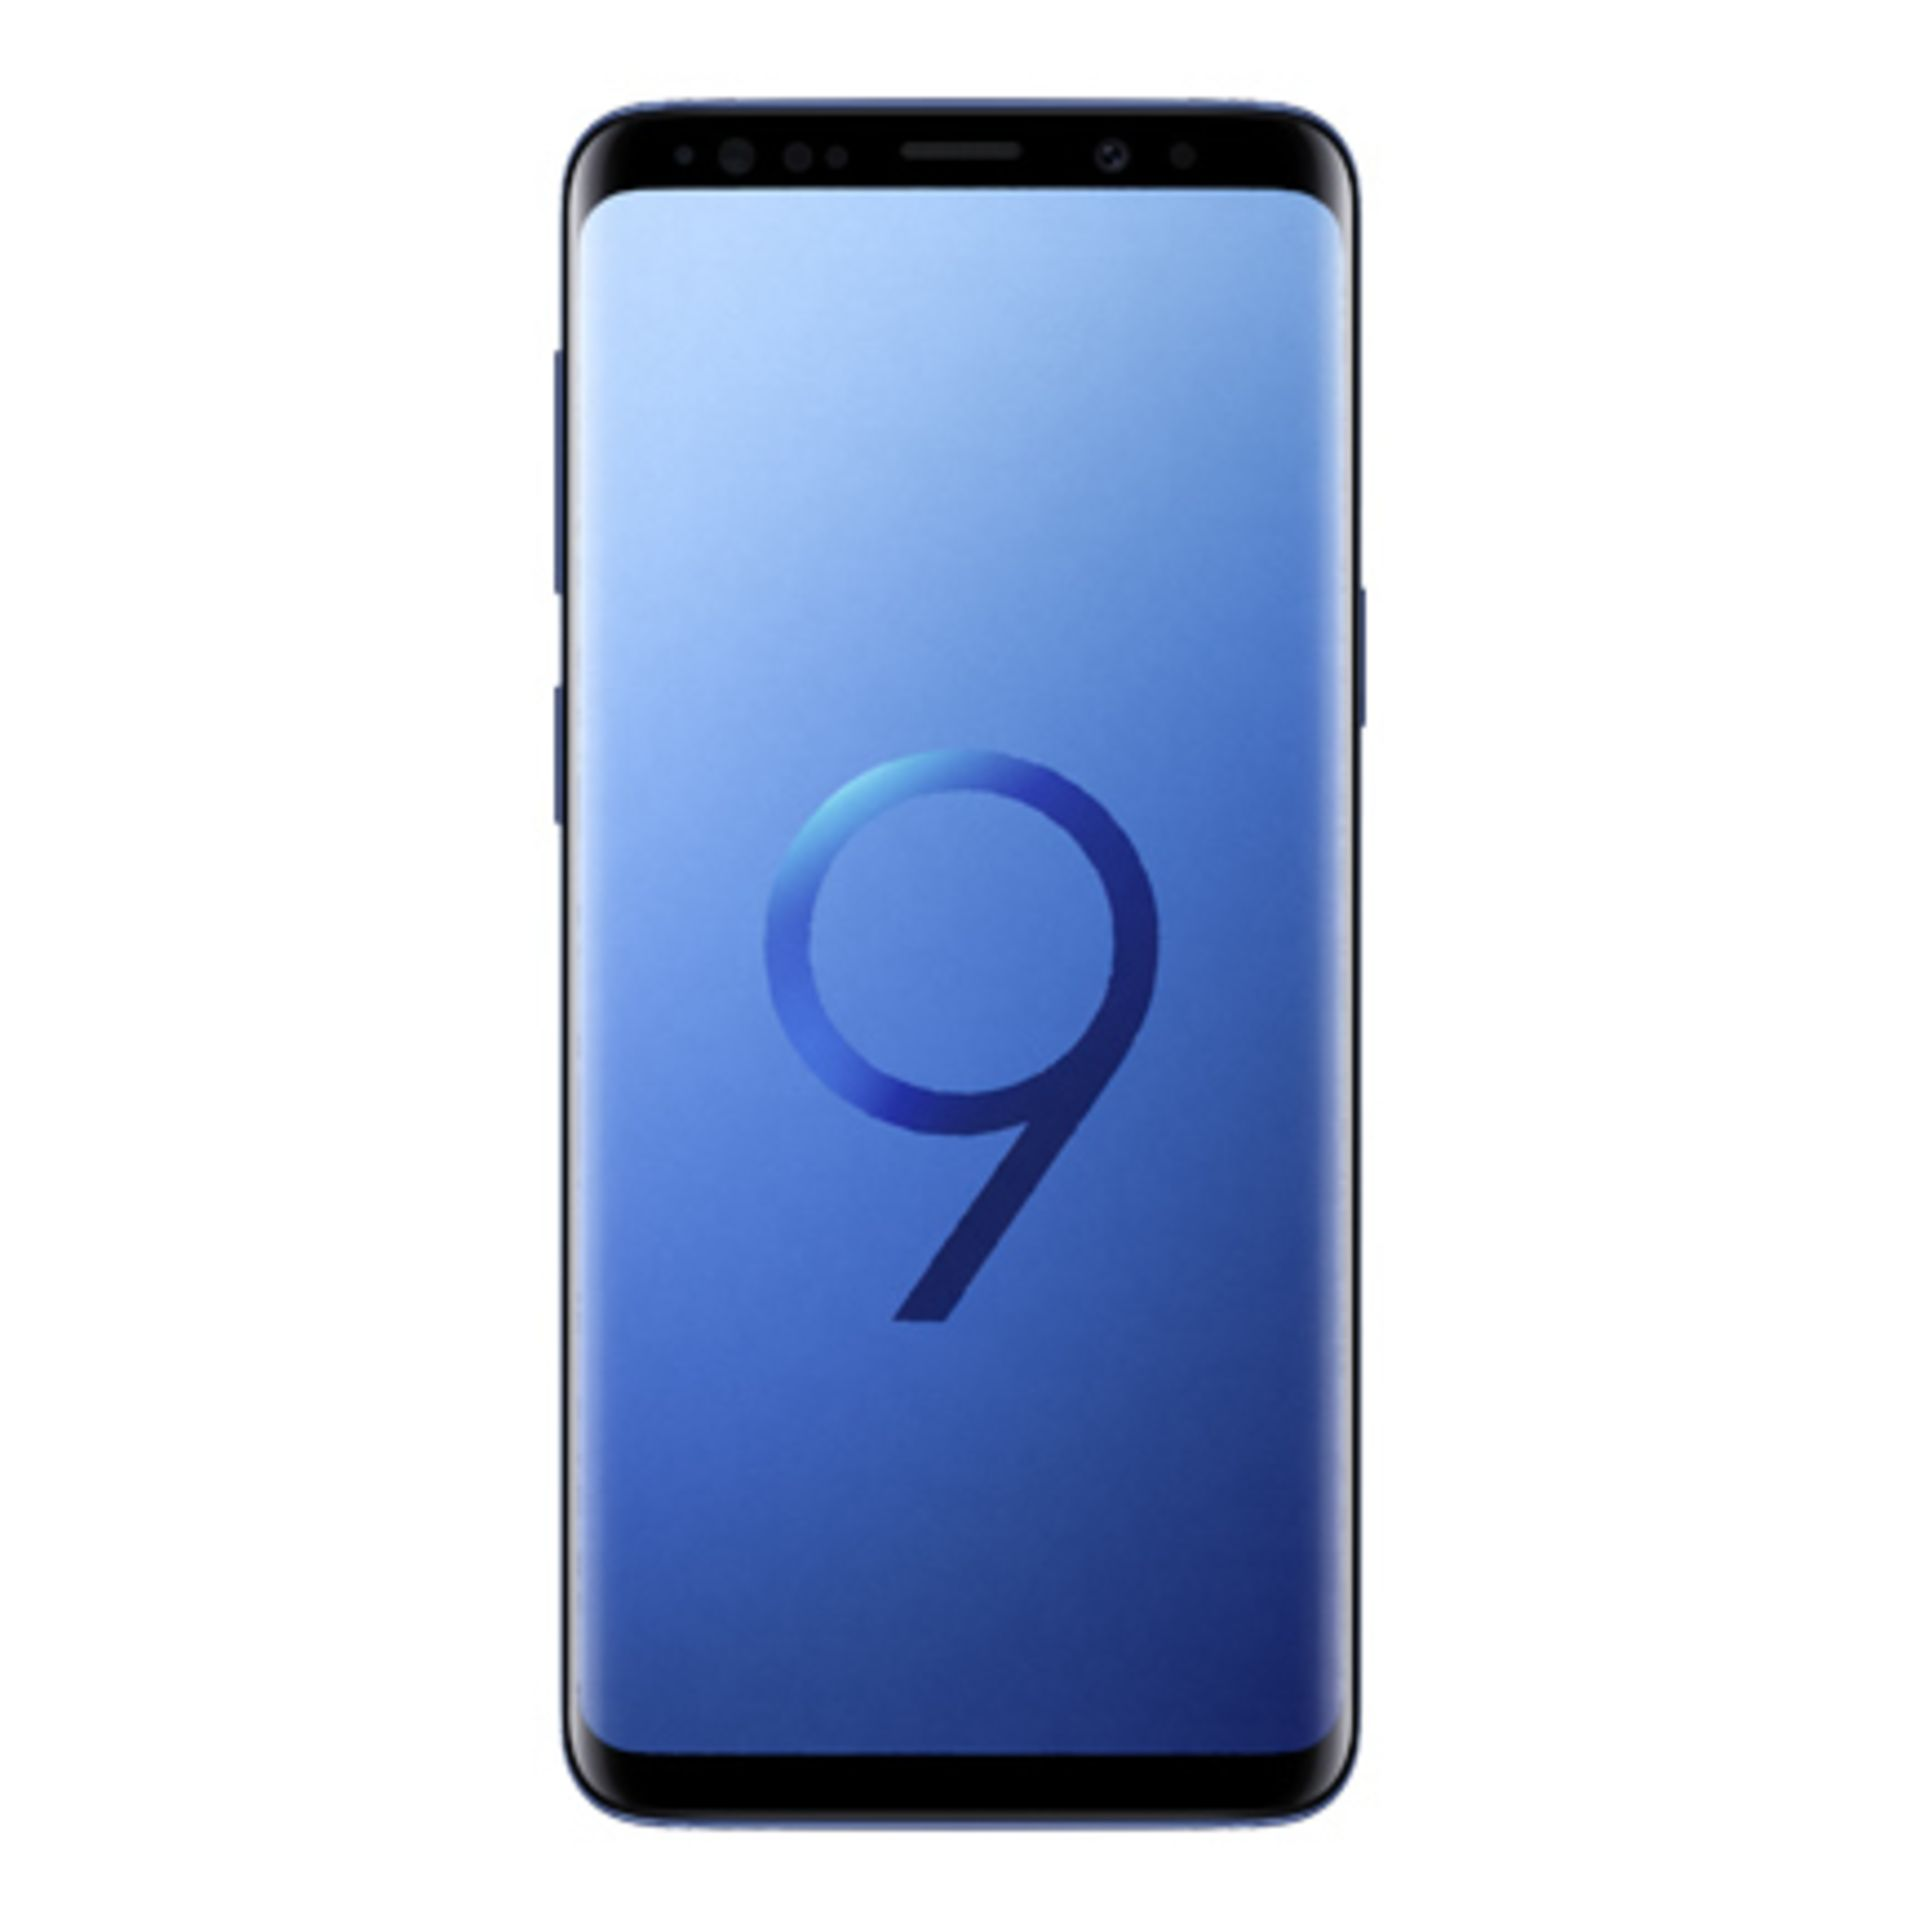 No VAT Grade A Samsung S9 Colours May Vary Item available approx 15 working days after sale